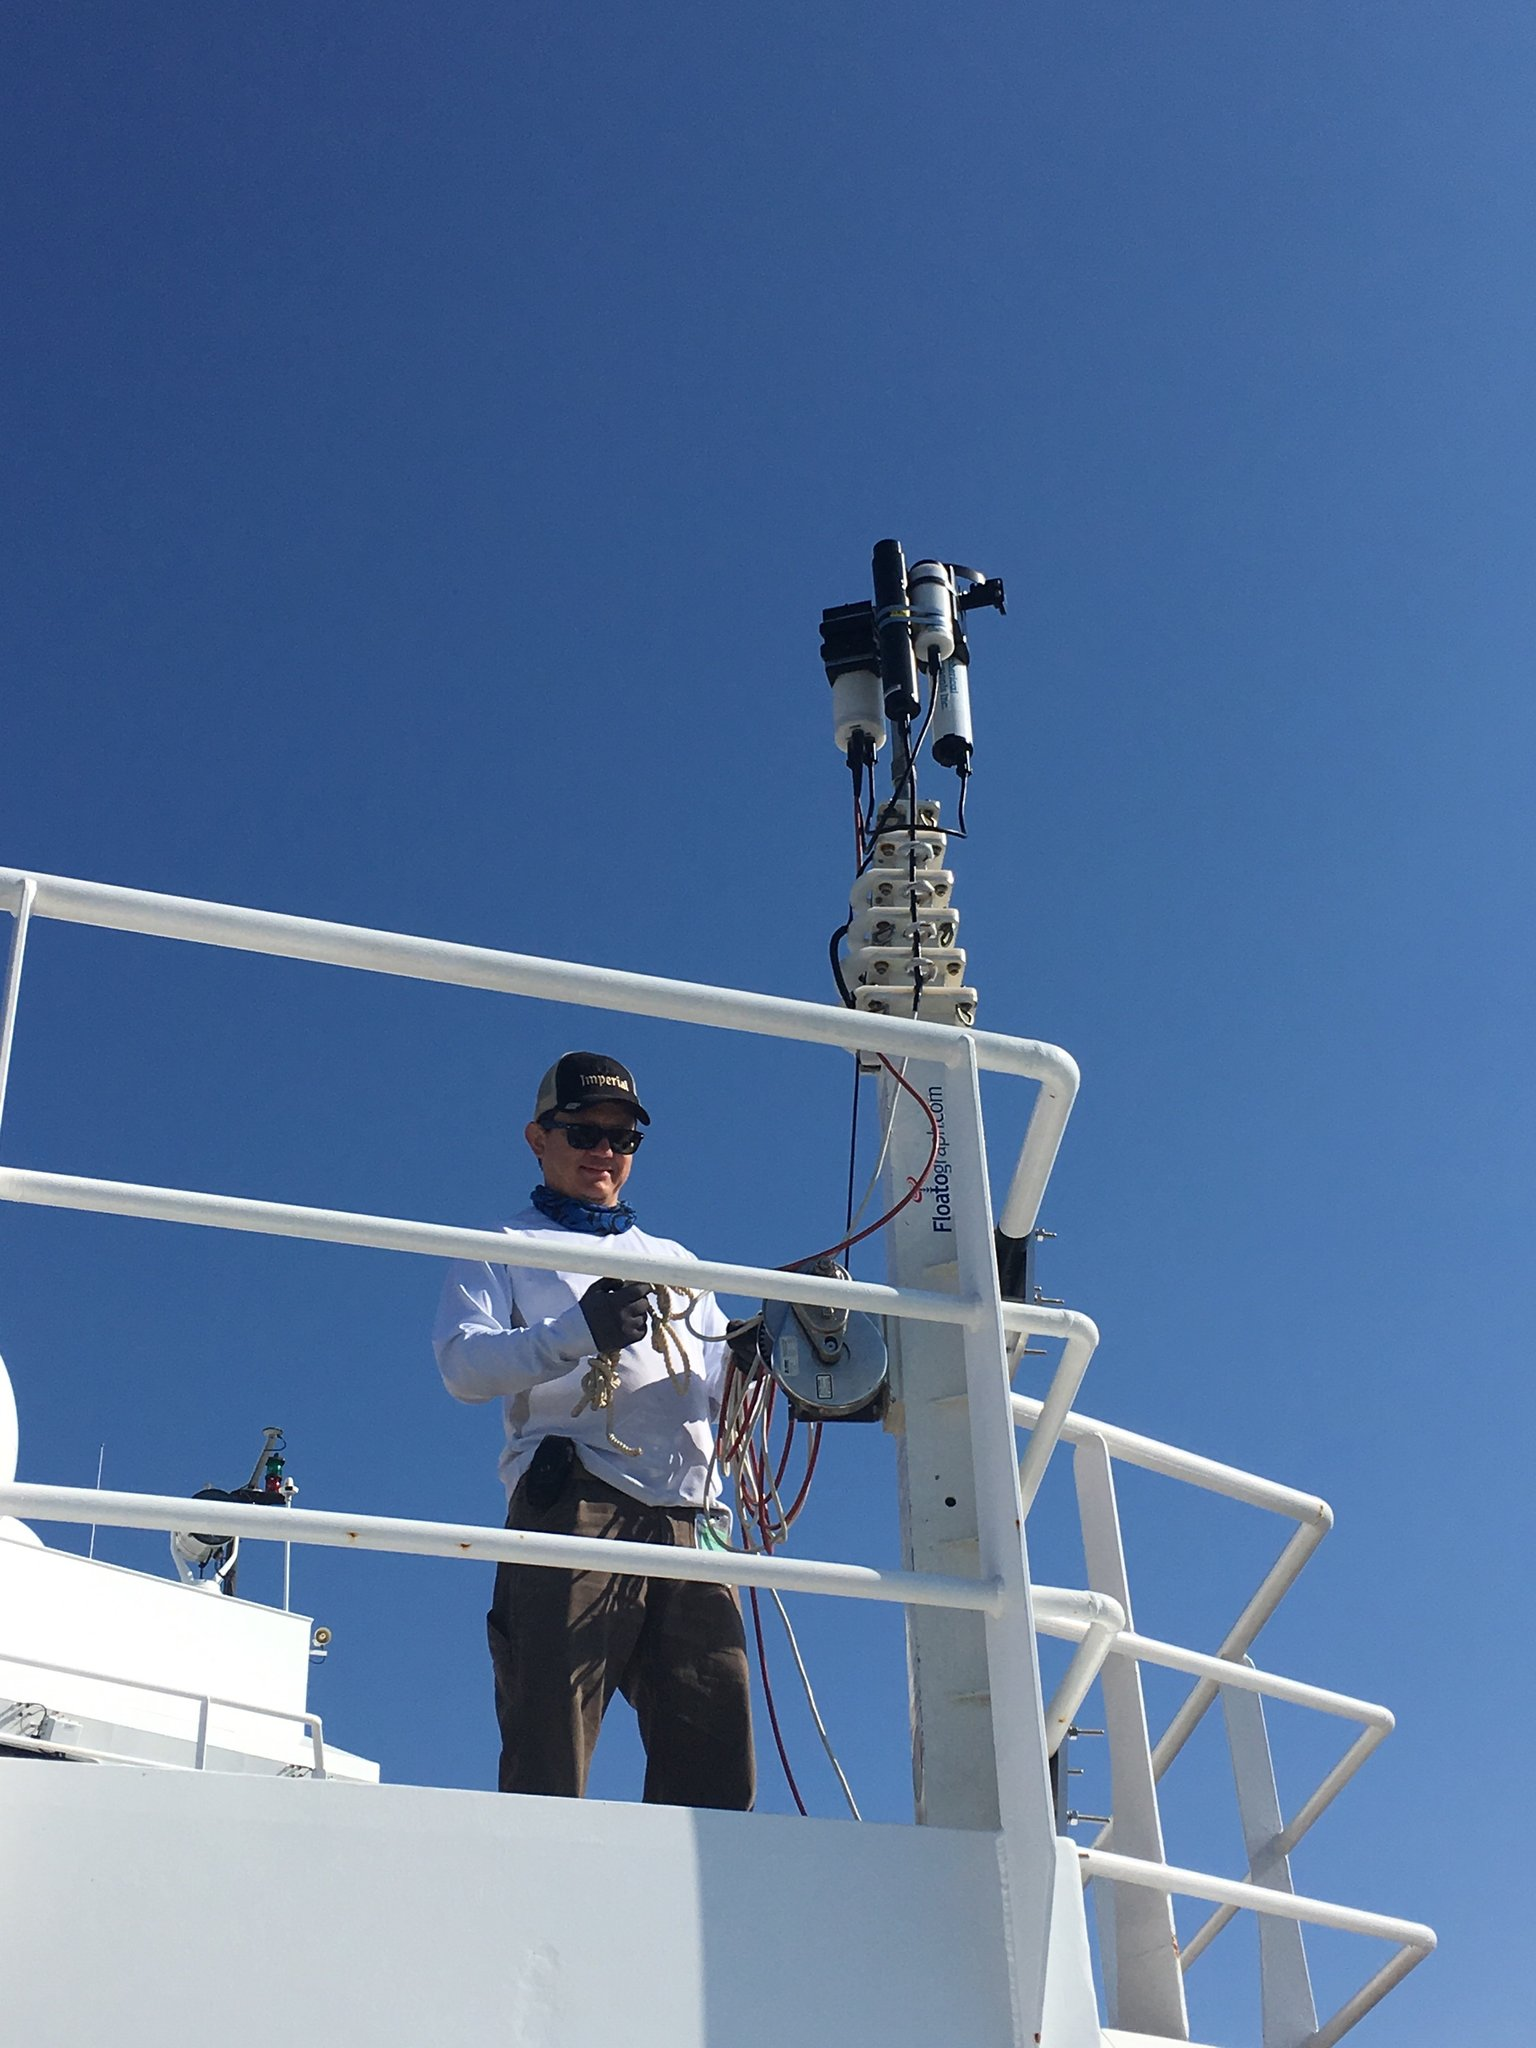 Ship-based radiometers (seen here attached to a deck rail) will collect hyperspectral data on ocean color during EXPORTS. The hyperspectral measurements will be similar to those that will be used aboard the PACE mission.